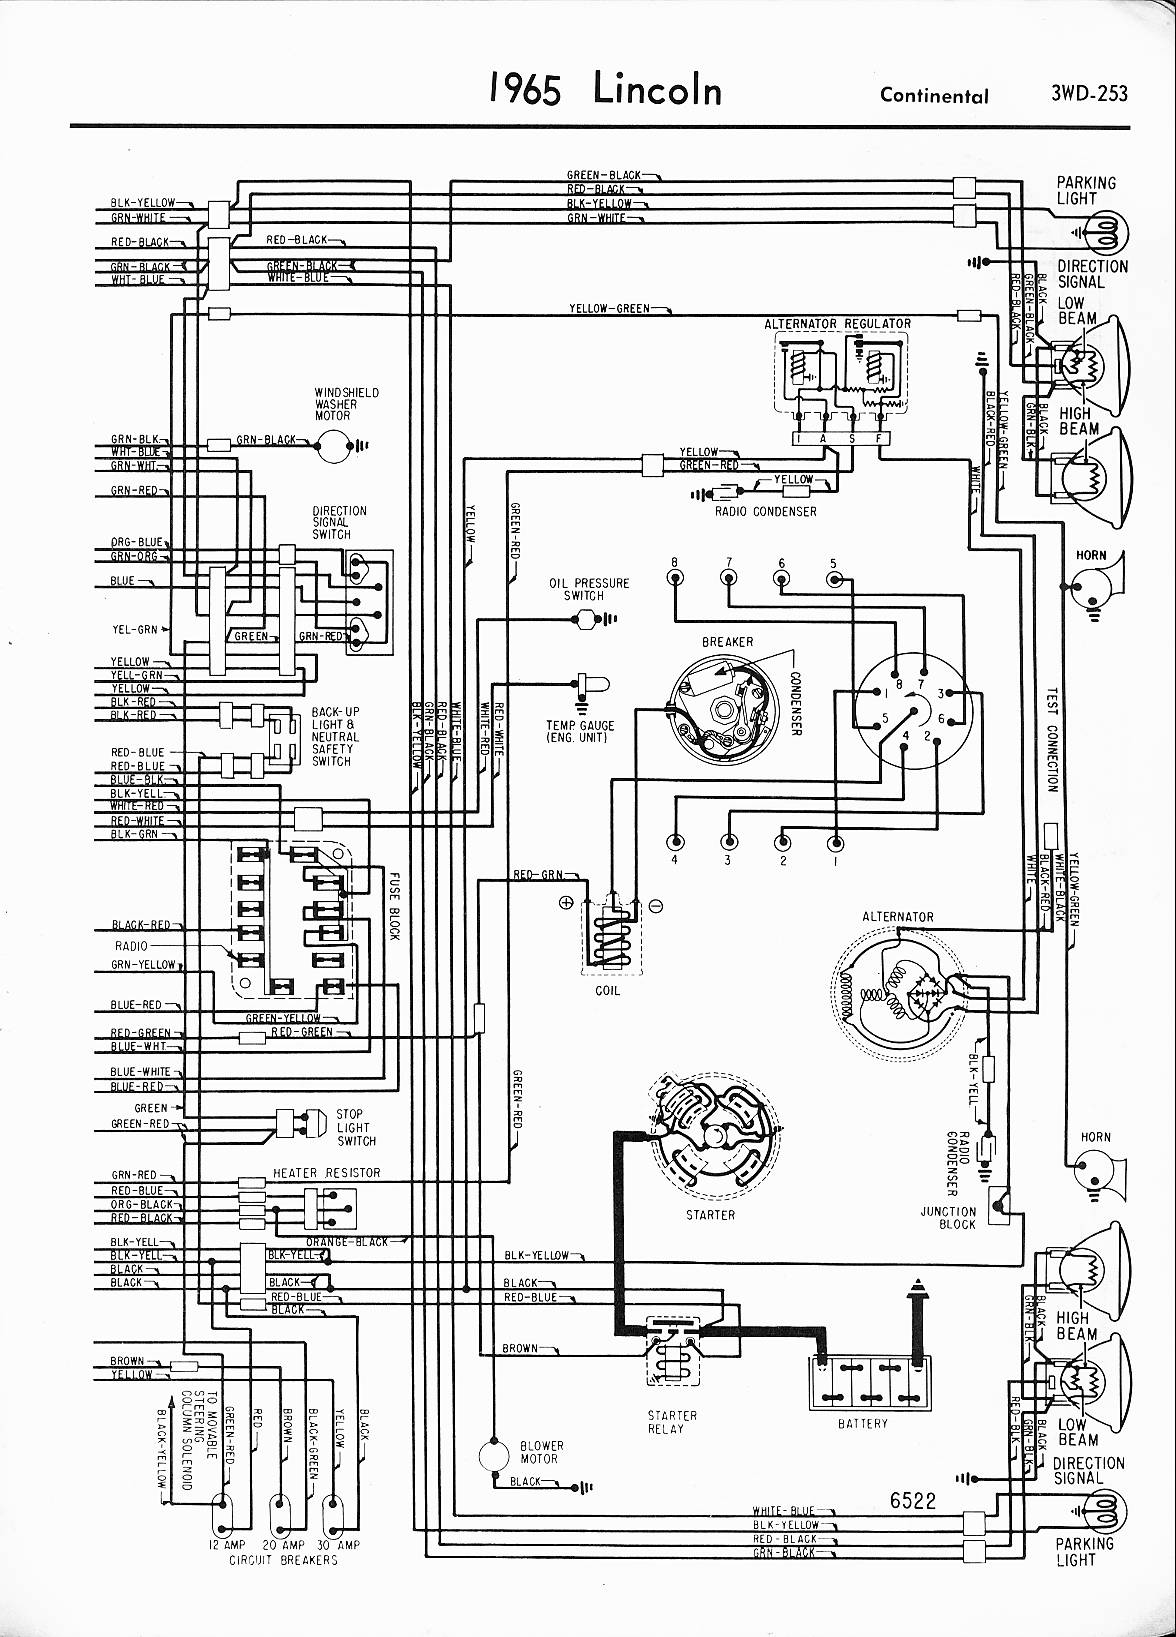 1965 Lincoln Wiring Diagram Archive Of Automotive Relay Circuit Breaker Diagrams 1957 Rh Oldcarmanualproject Com